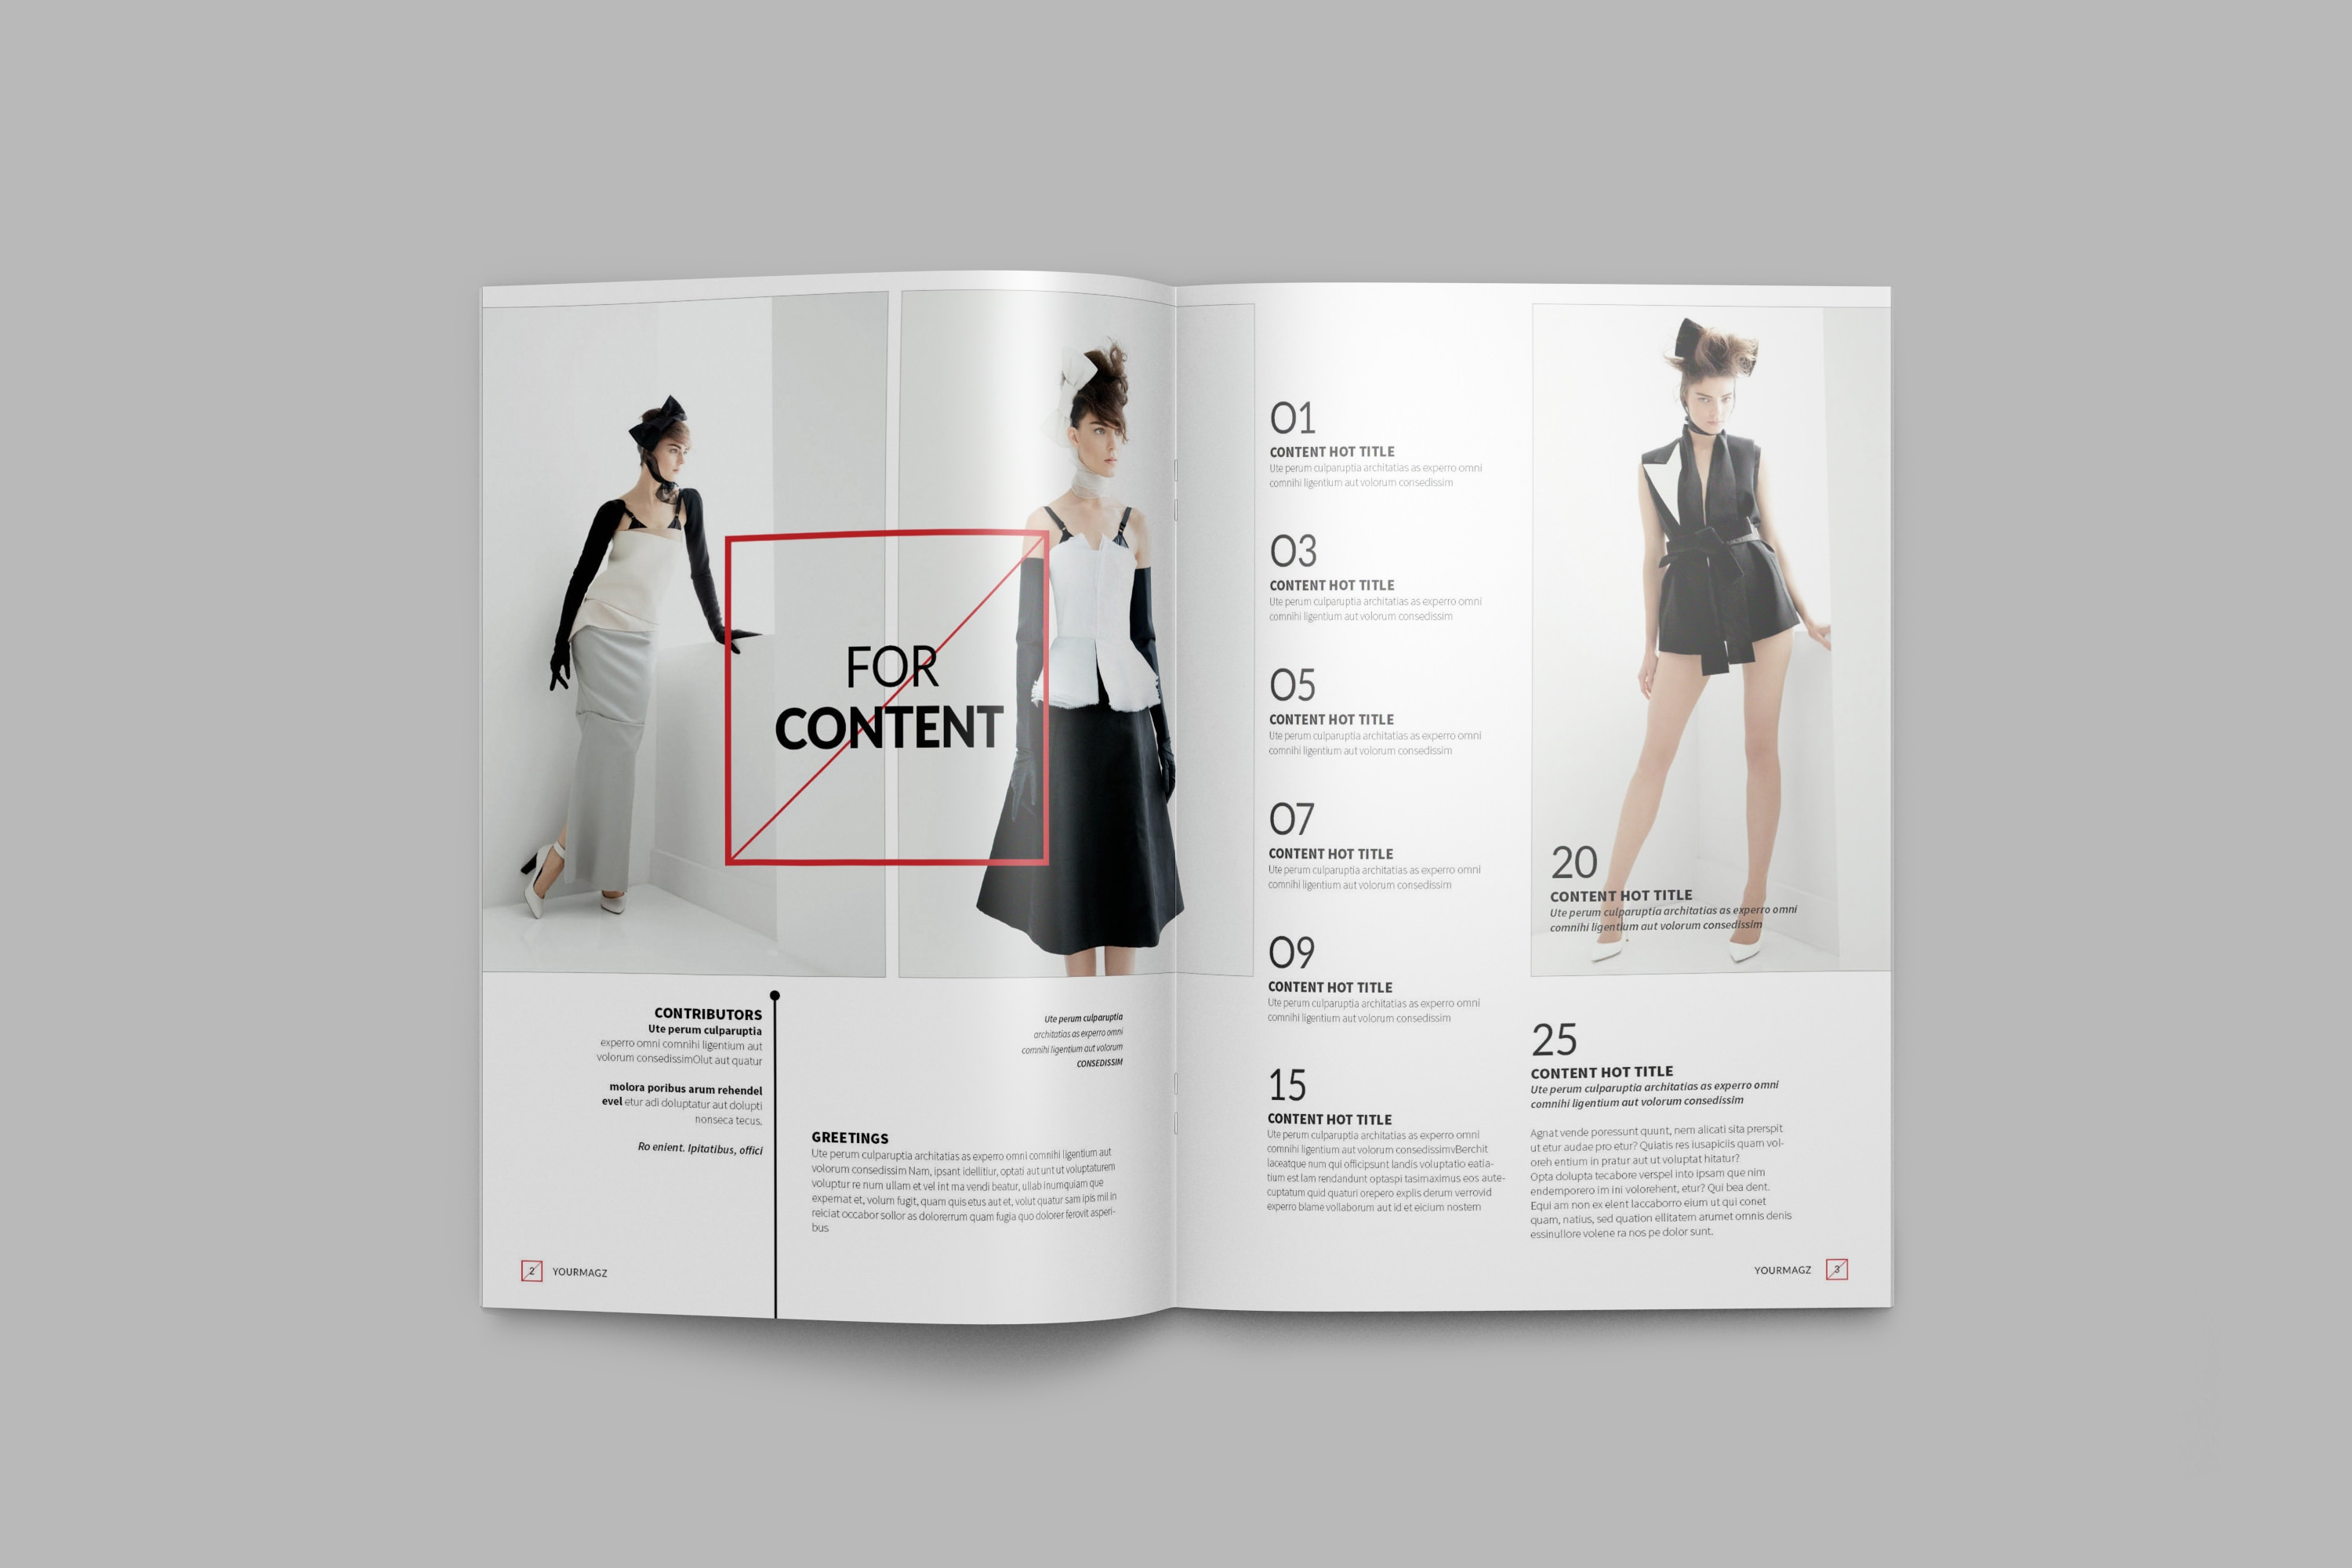 a4 infographic paper mockup